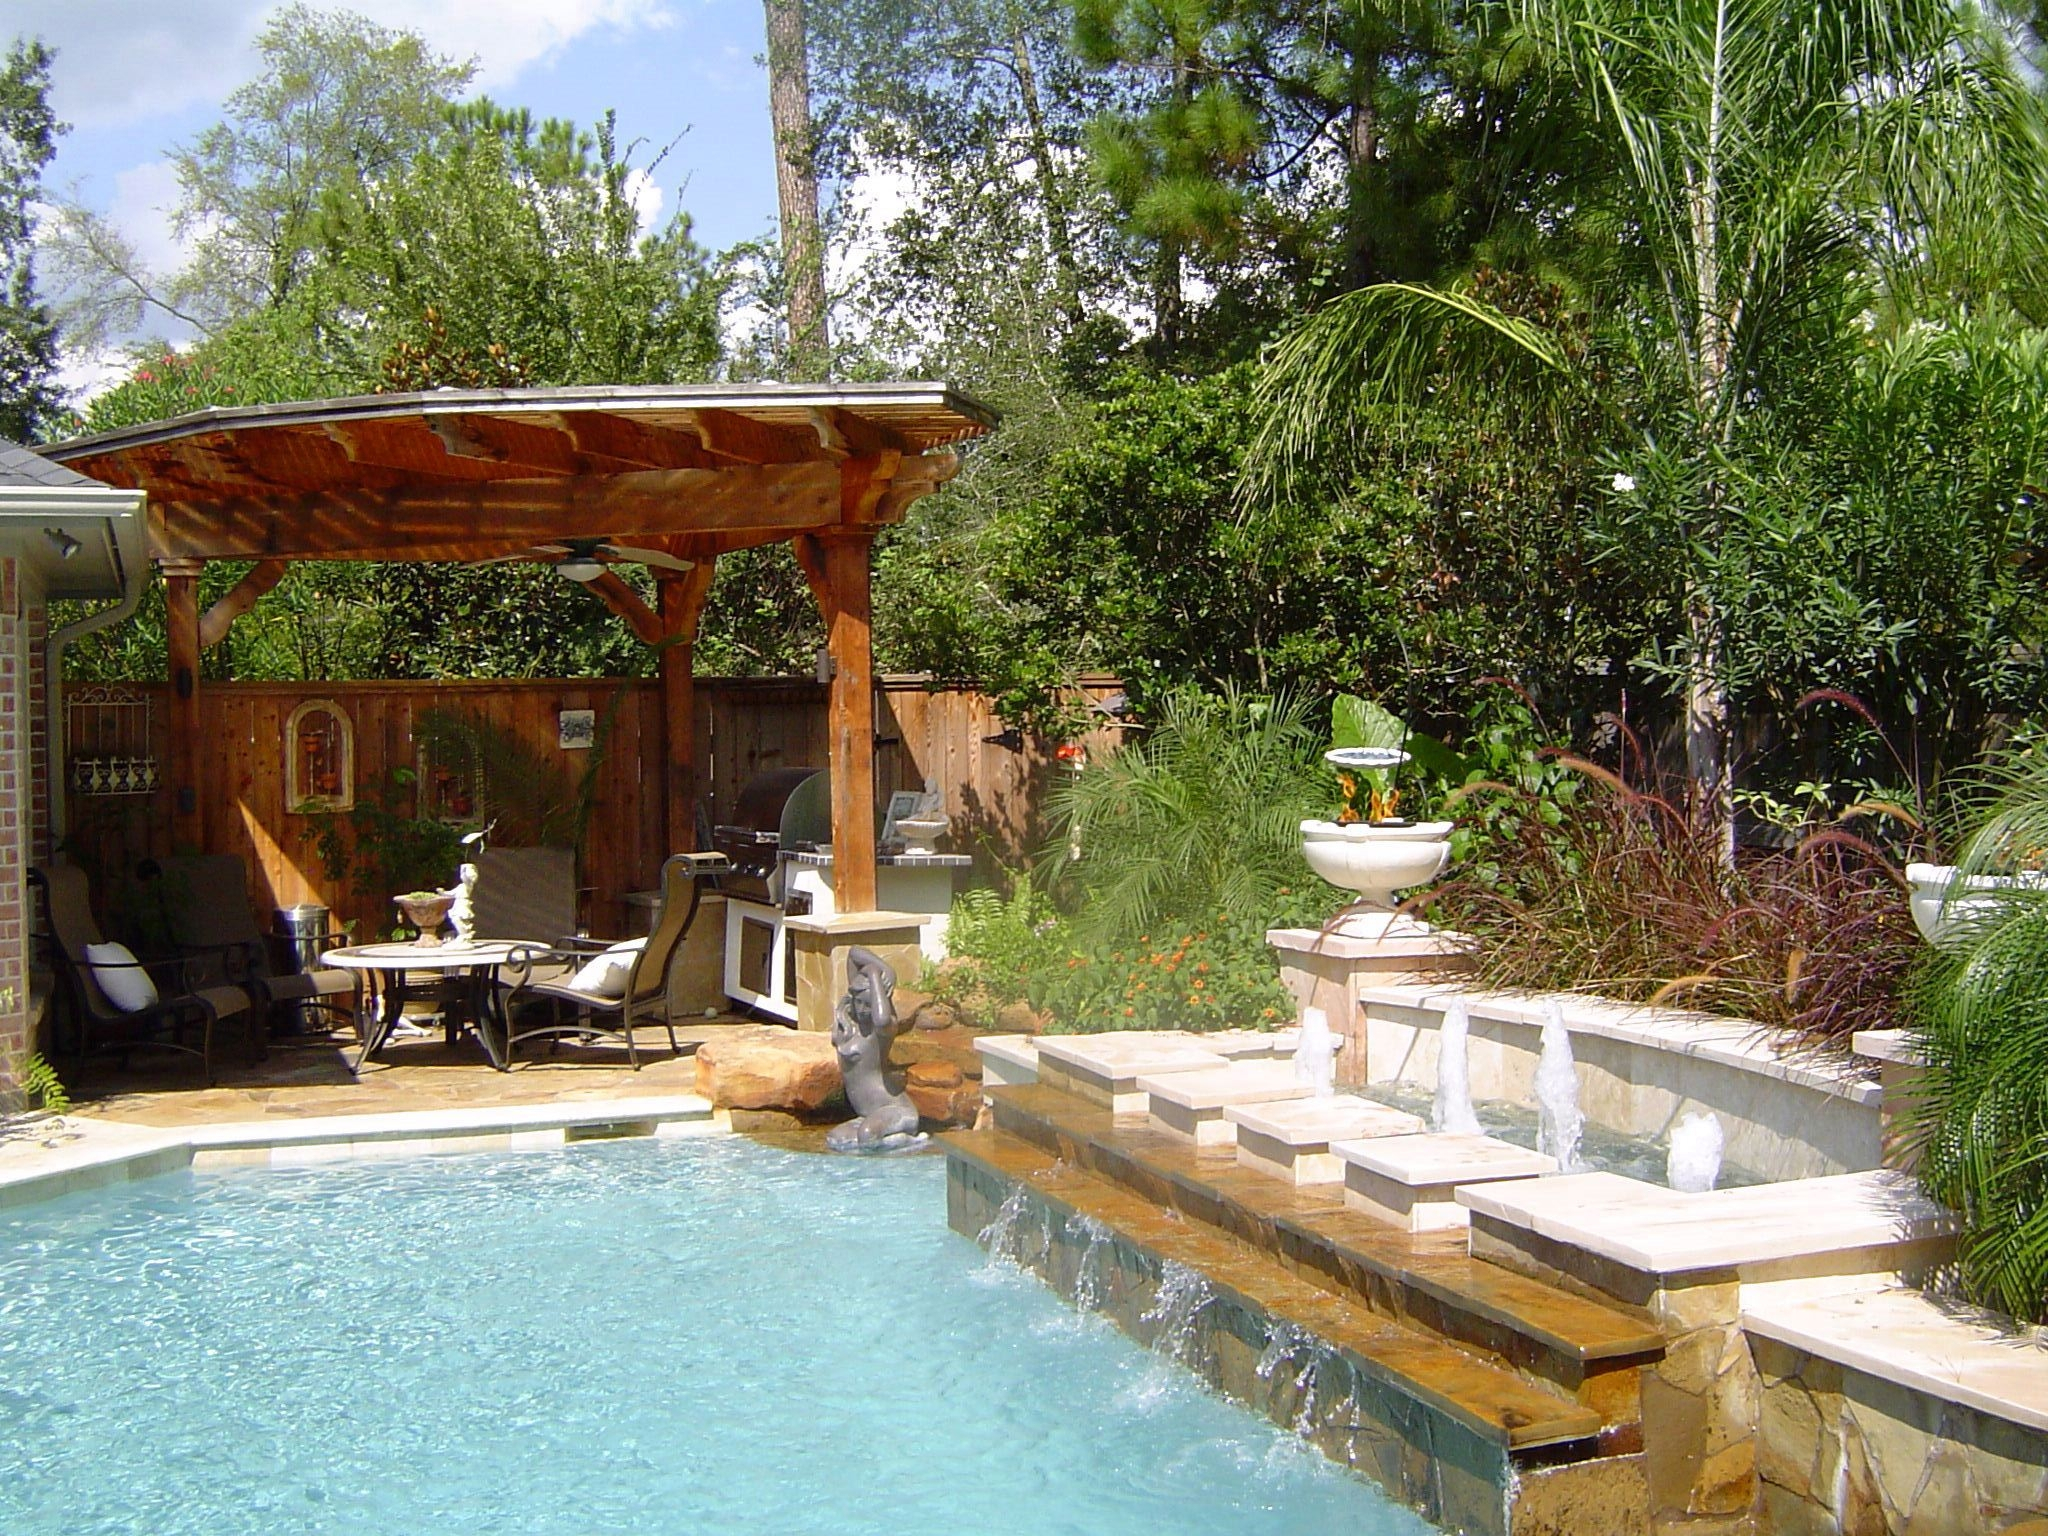 Small Backyard Ideas Home Landscape Design for 15 Clever Designs of How to Craft Great Small Backyard Ideas